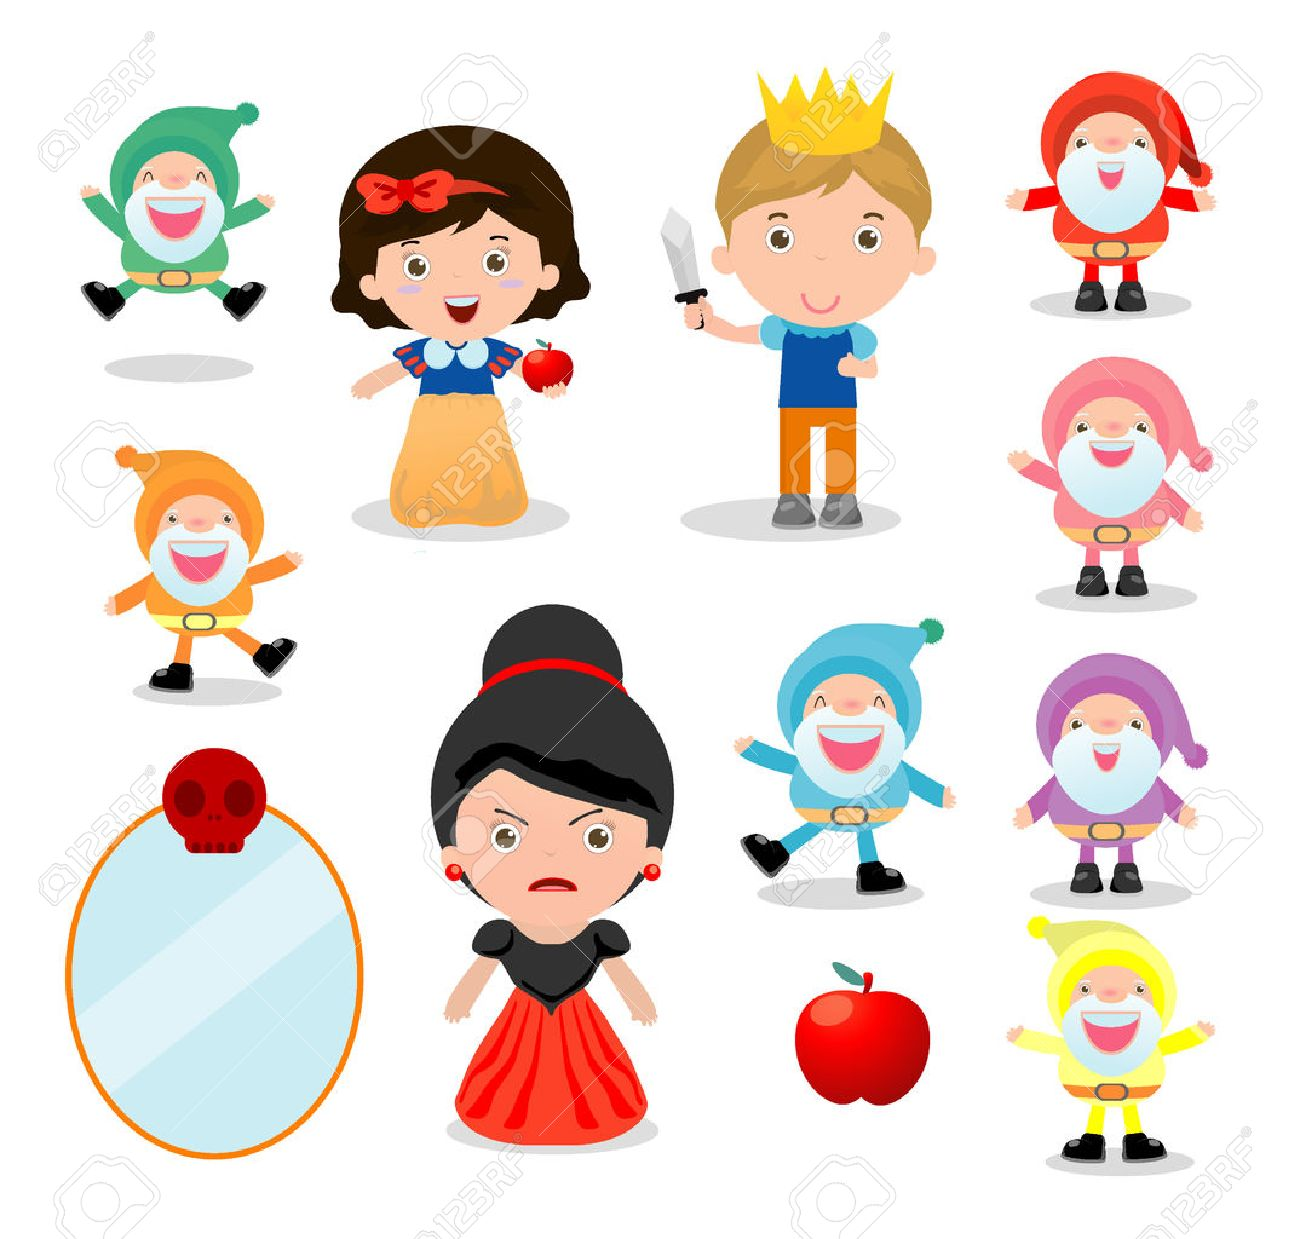 snow white and the seven dwarfs, Snow White on white background, prince, Princess and Dwarfs and witch, Vector Illustration - 67894003